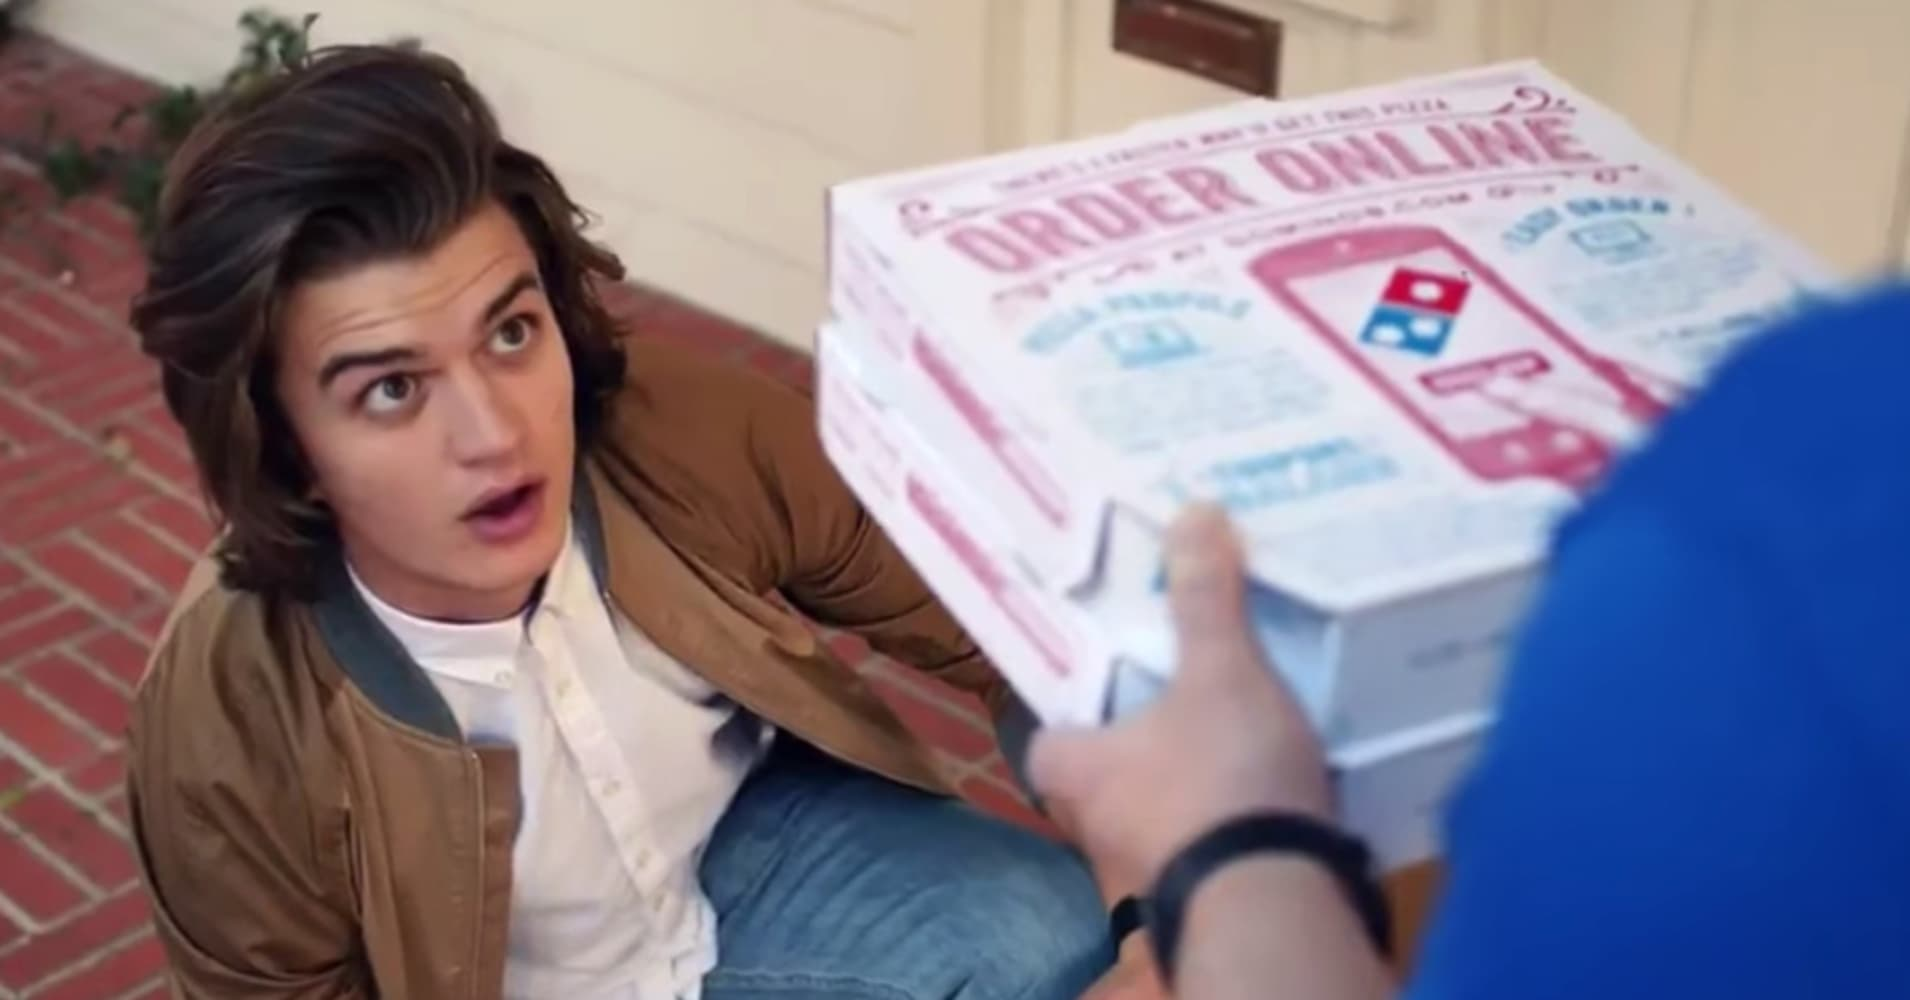 Stranger Things actor Joe Keery recreates an iconic Ferris Bueller scene in a Dominos ad.